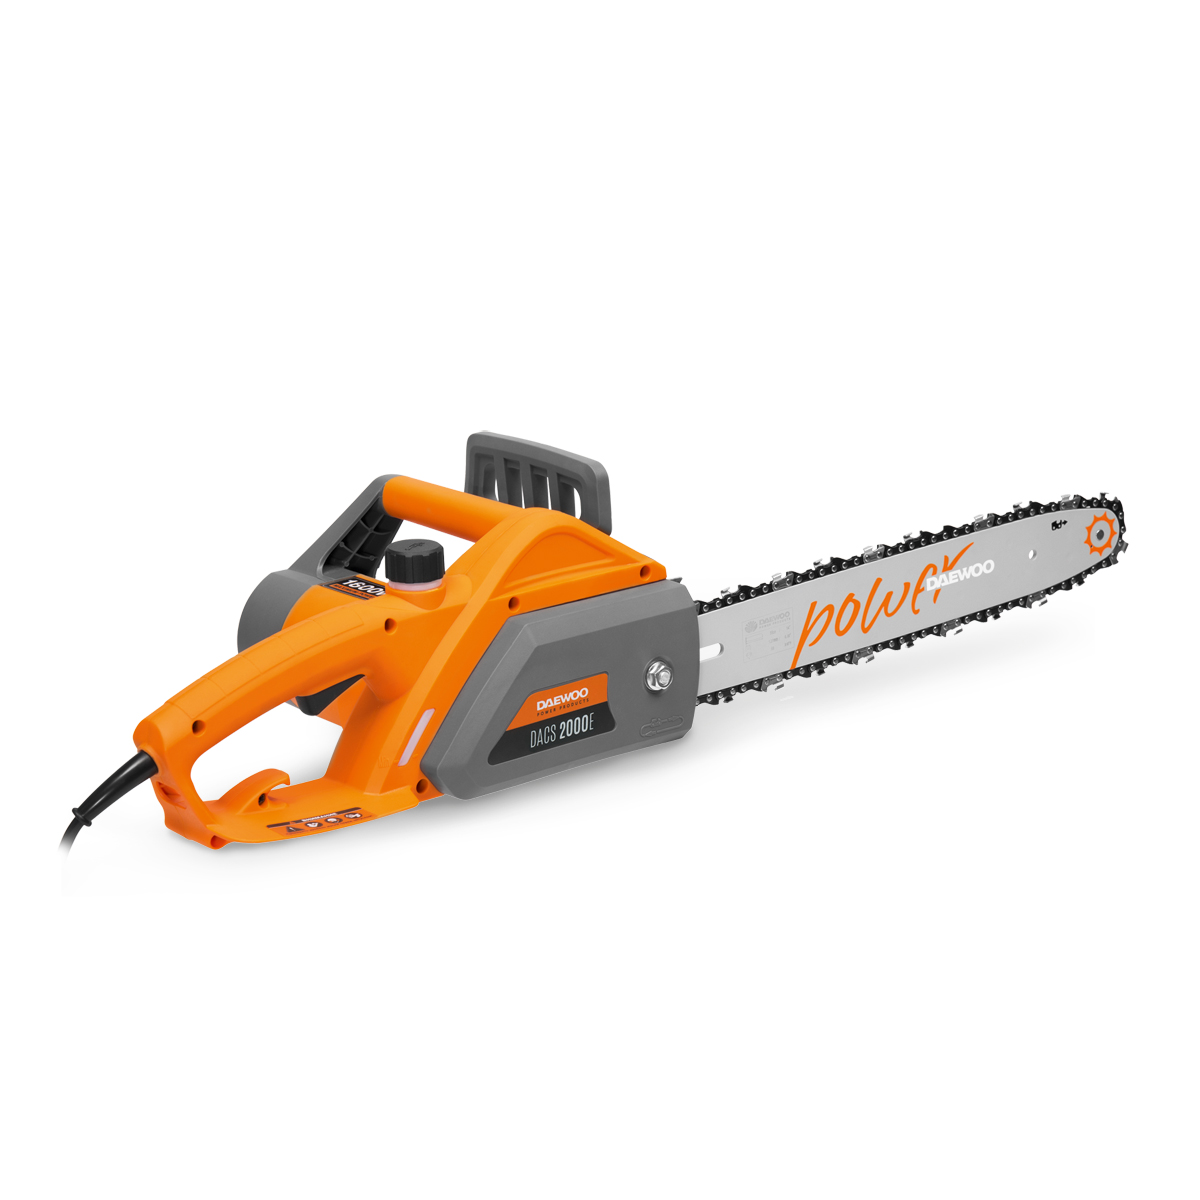 Electric Chainsaw Daewoo DACS 2000E